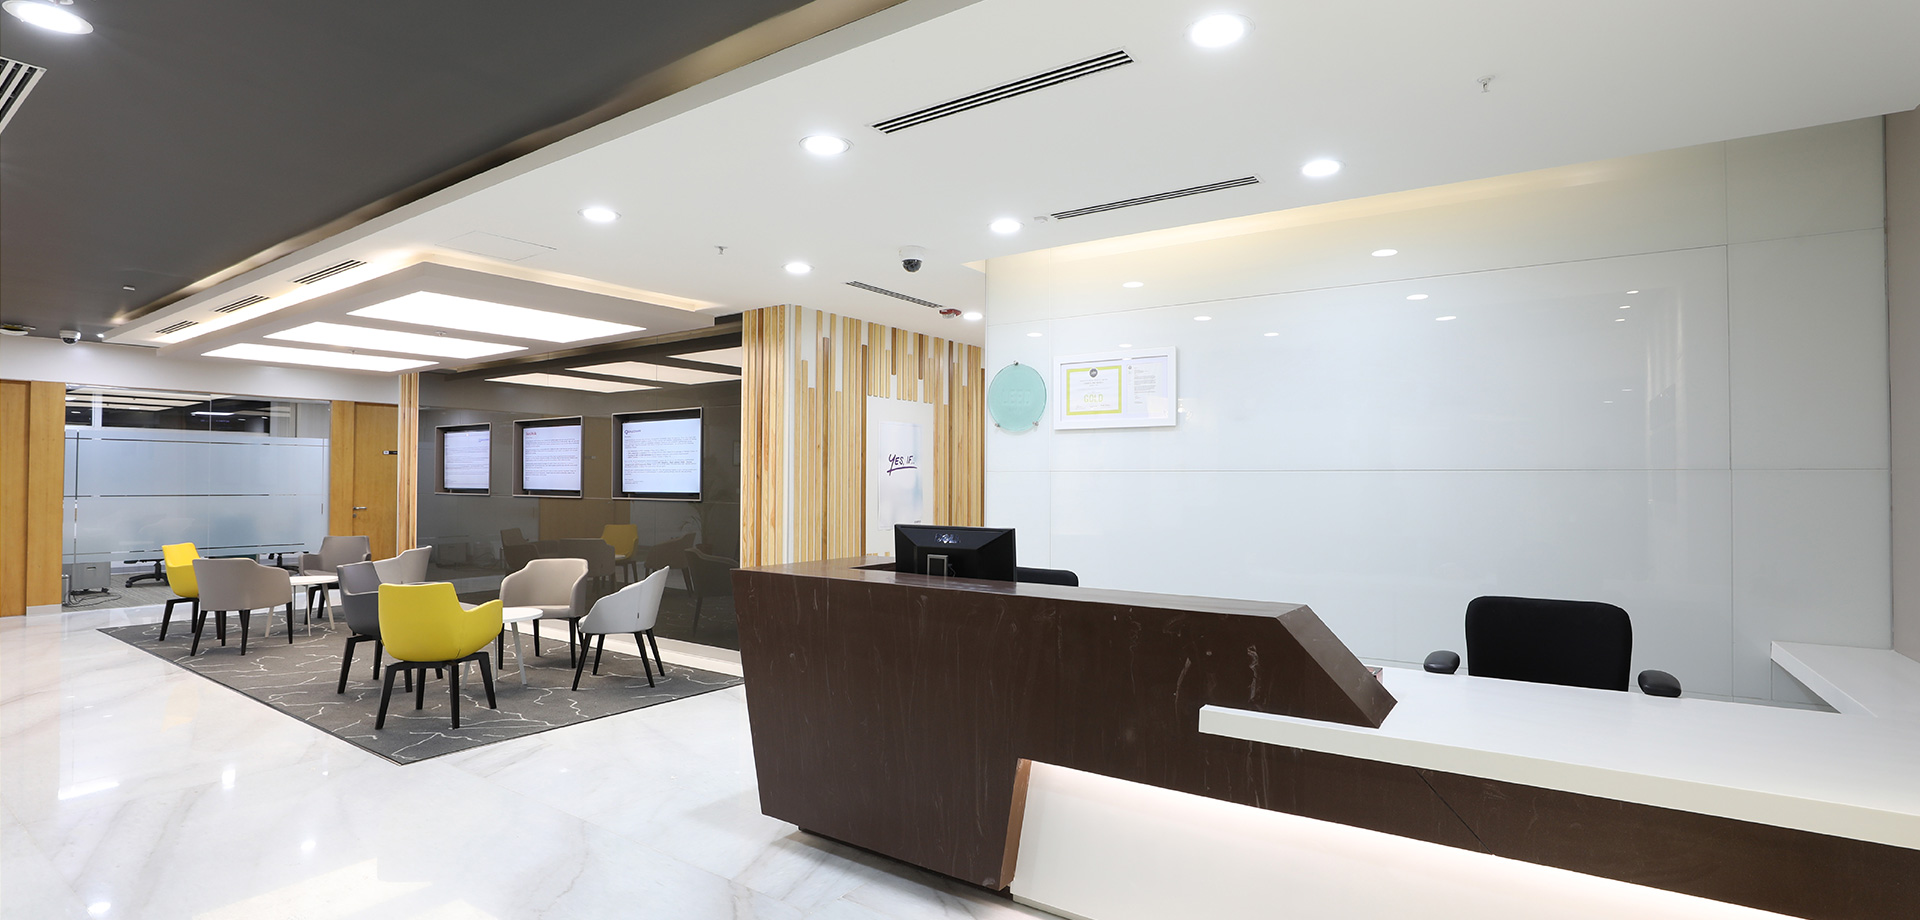 CORPORATE INTERIOR DESIGN